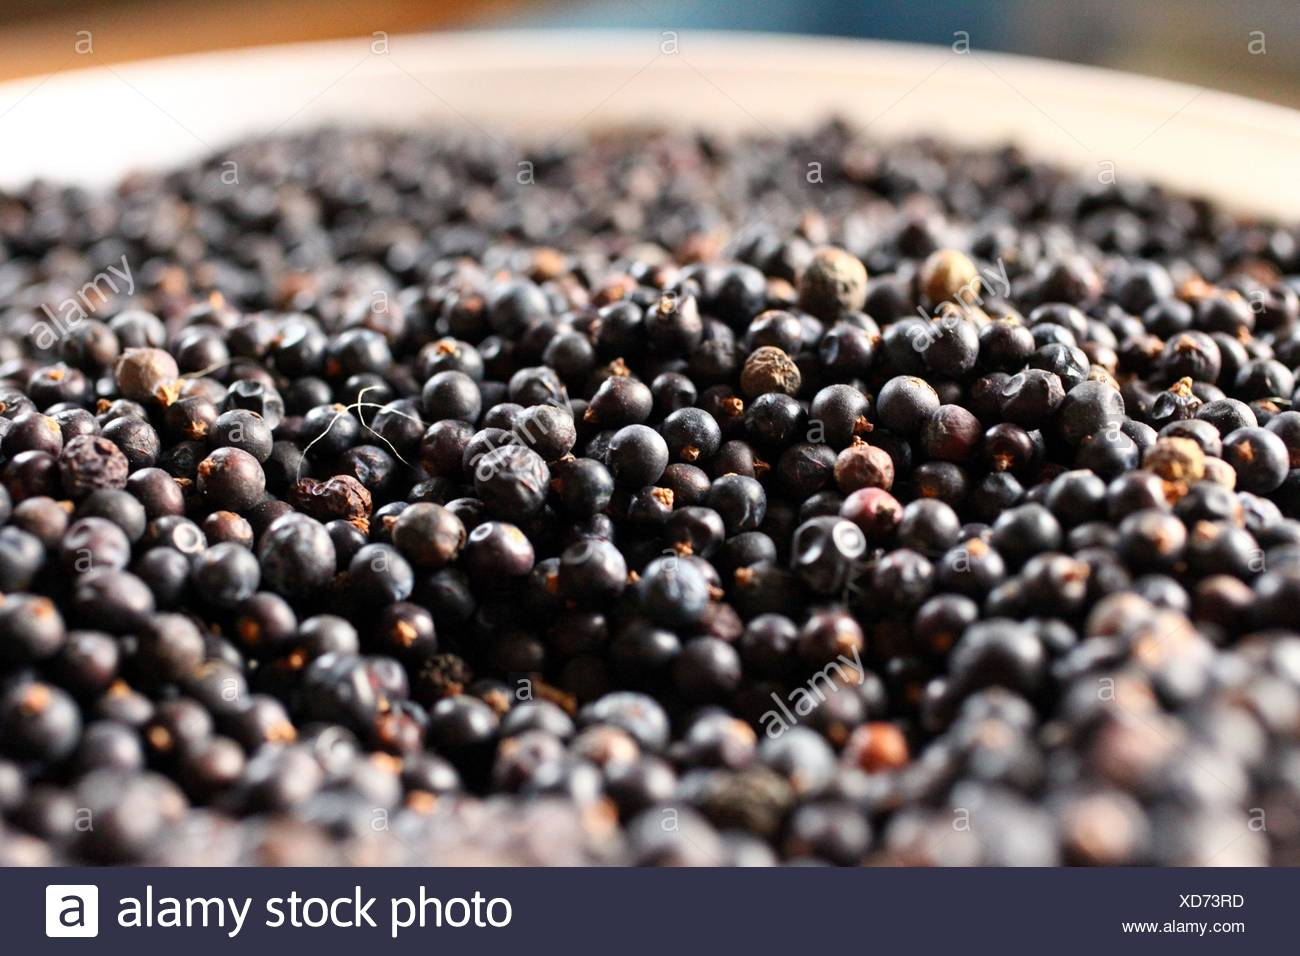 Juniper berries used in making of gin - Stock Image